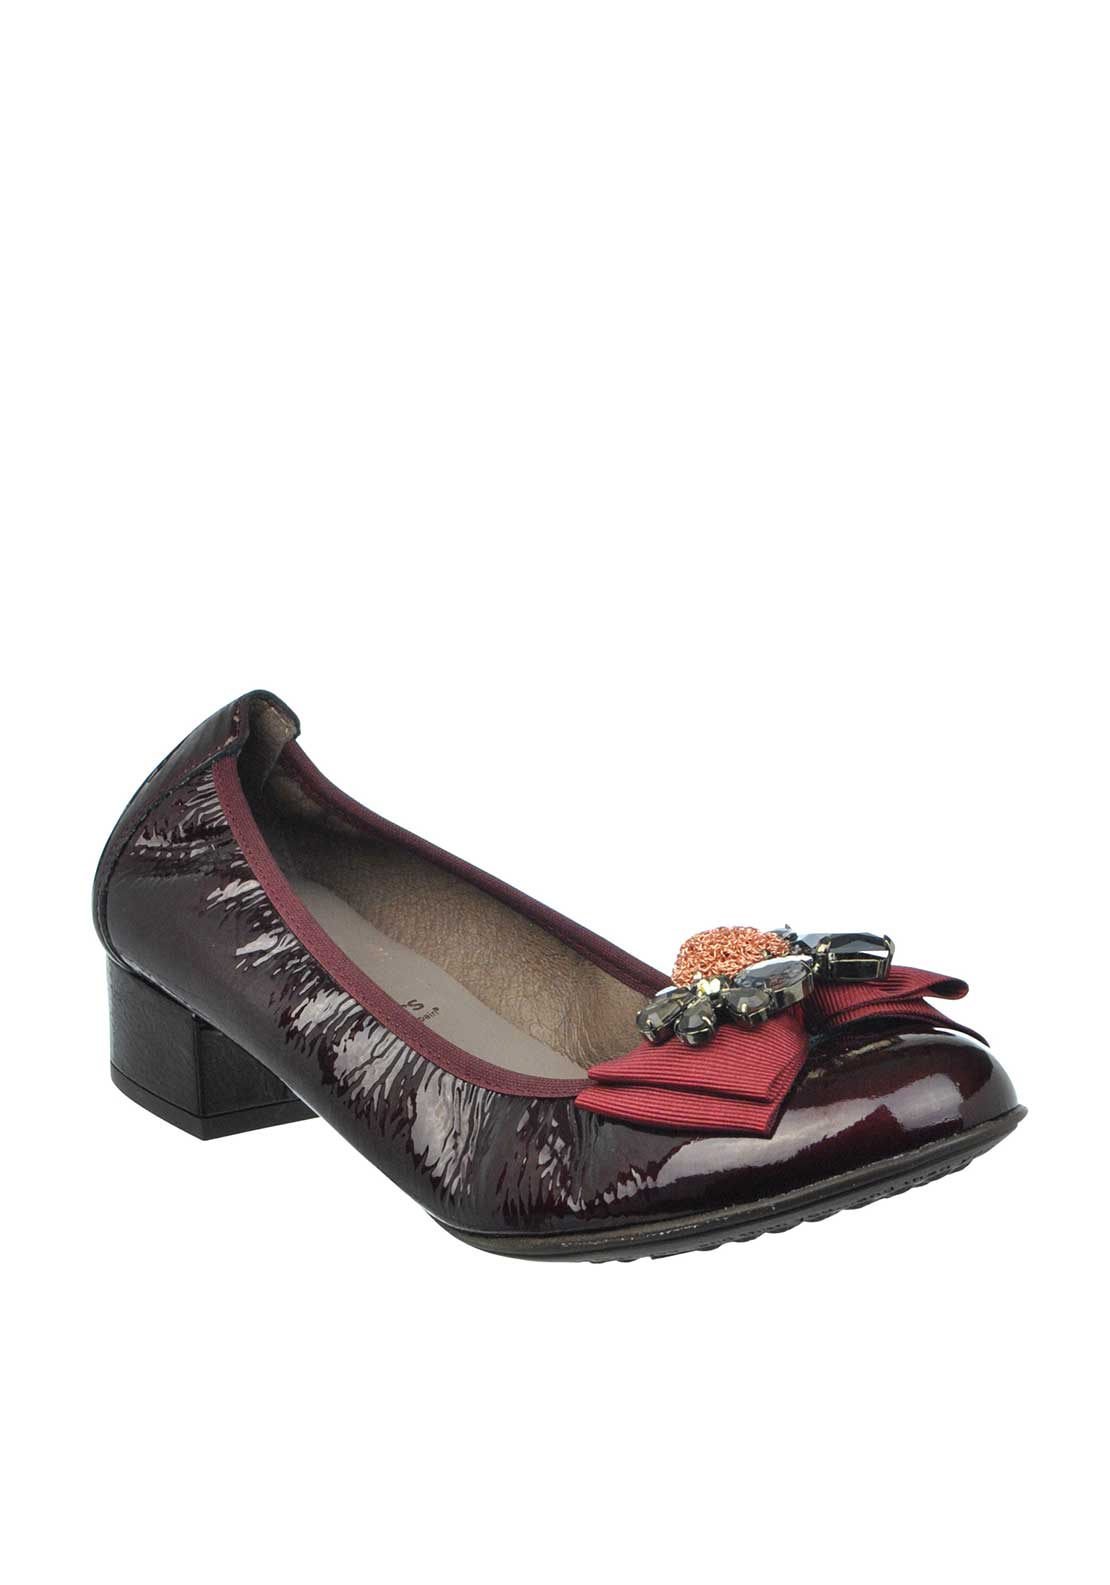 Wonders Patent Leather Diamante Embellished Pumps, Wine